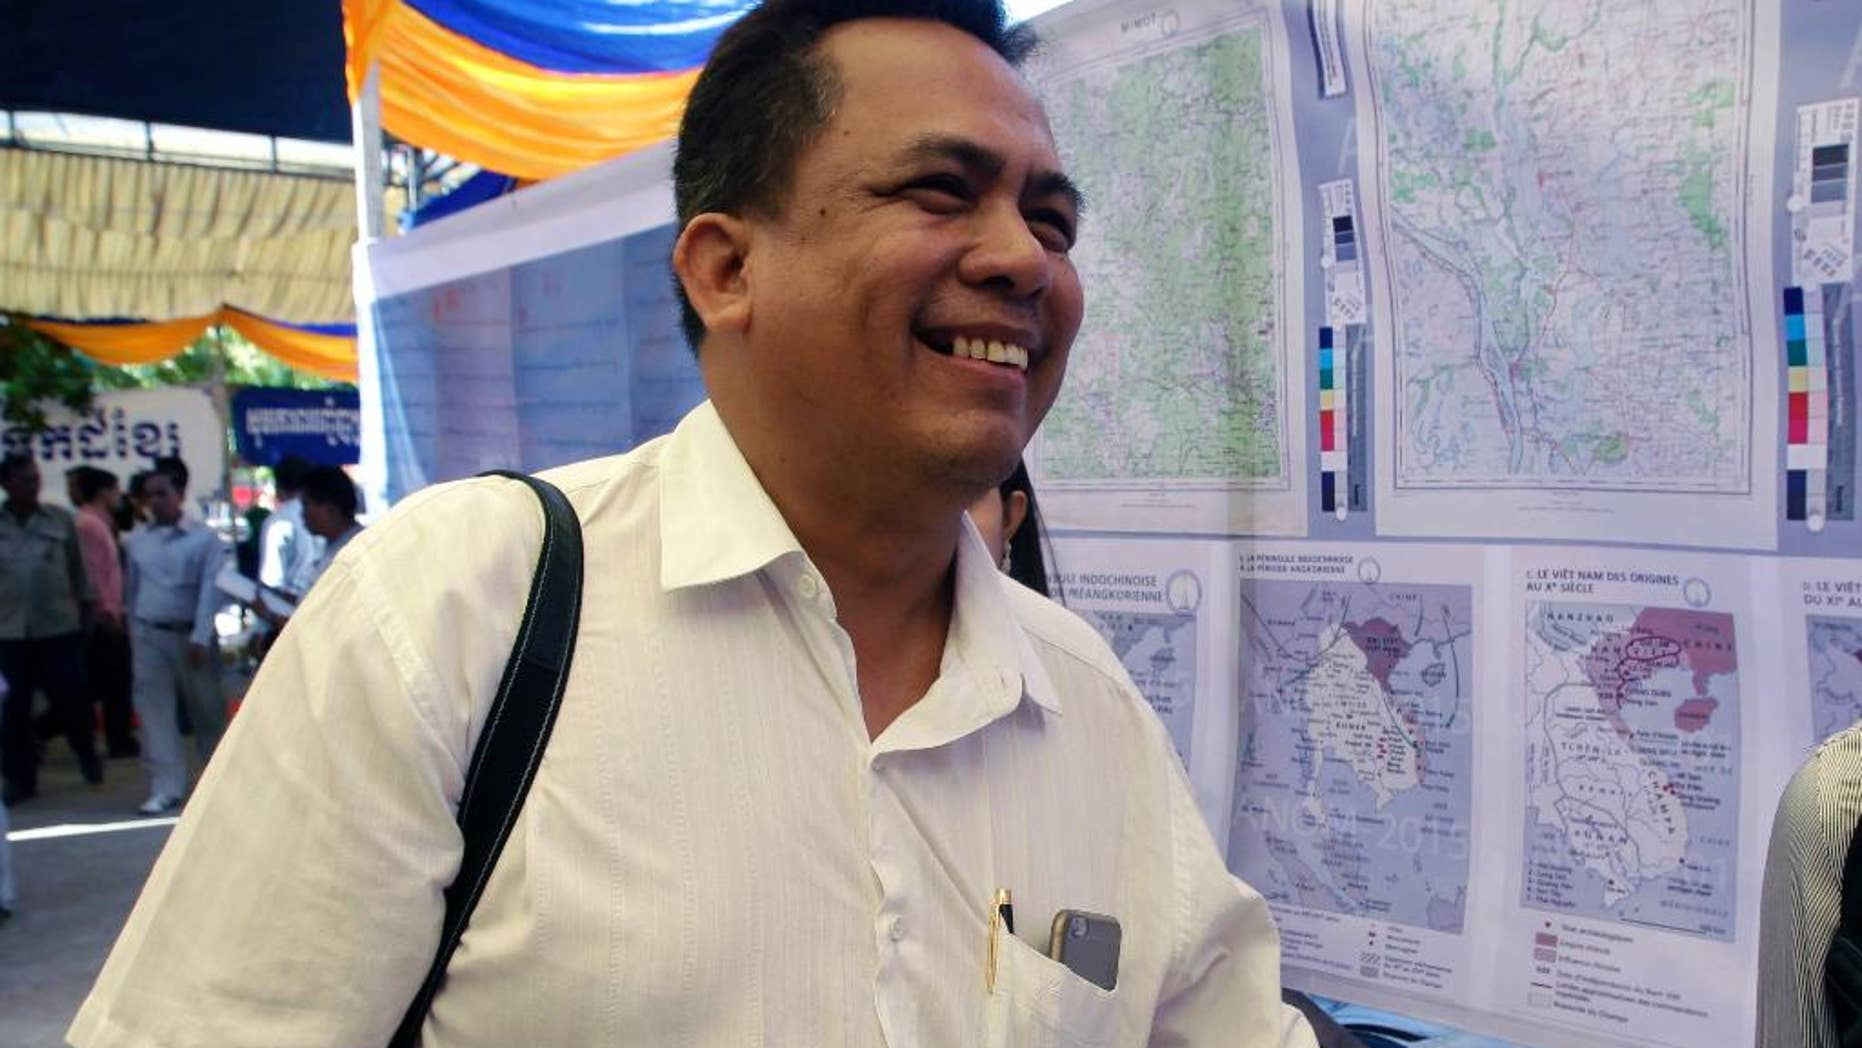 FILE - In this June 4, 2016, file photo, prominent political analyst Kem Ley smiles as he celebrated the 67th anniversary to commemorate the Kampuchea Krom territory's return to Vietnam by the French government, at Chroy Changvar, in Phnom Penh, Cambodia. A Cambodian man has confessed in court Wednesday to killing Kem Ley over an unpaid loan, but the victim's family says he's a scapegoat in a political assassination. (AP Photo/Heng Sinith, File)